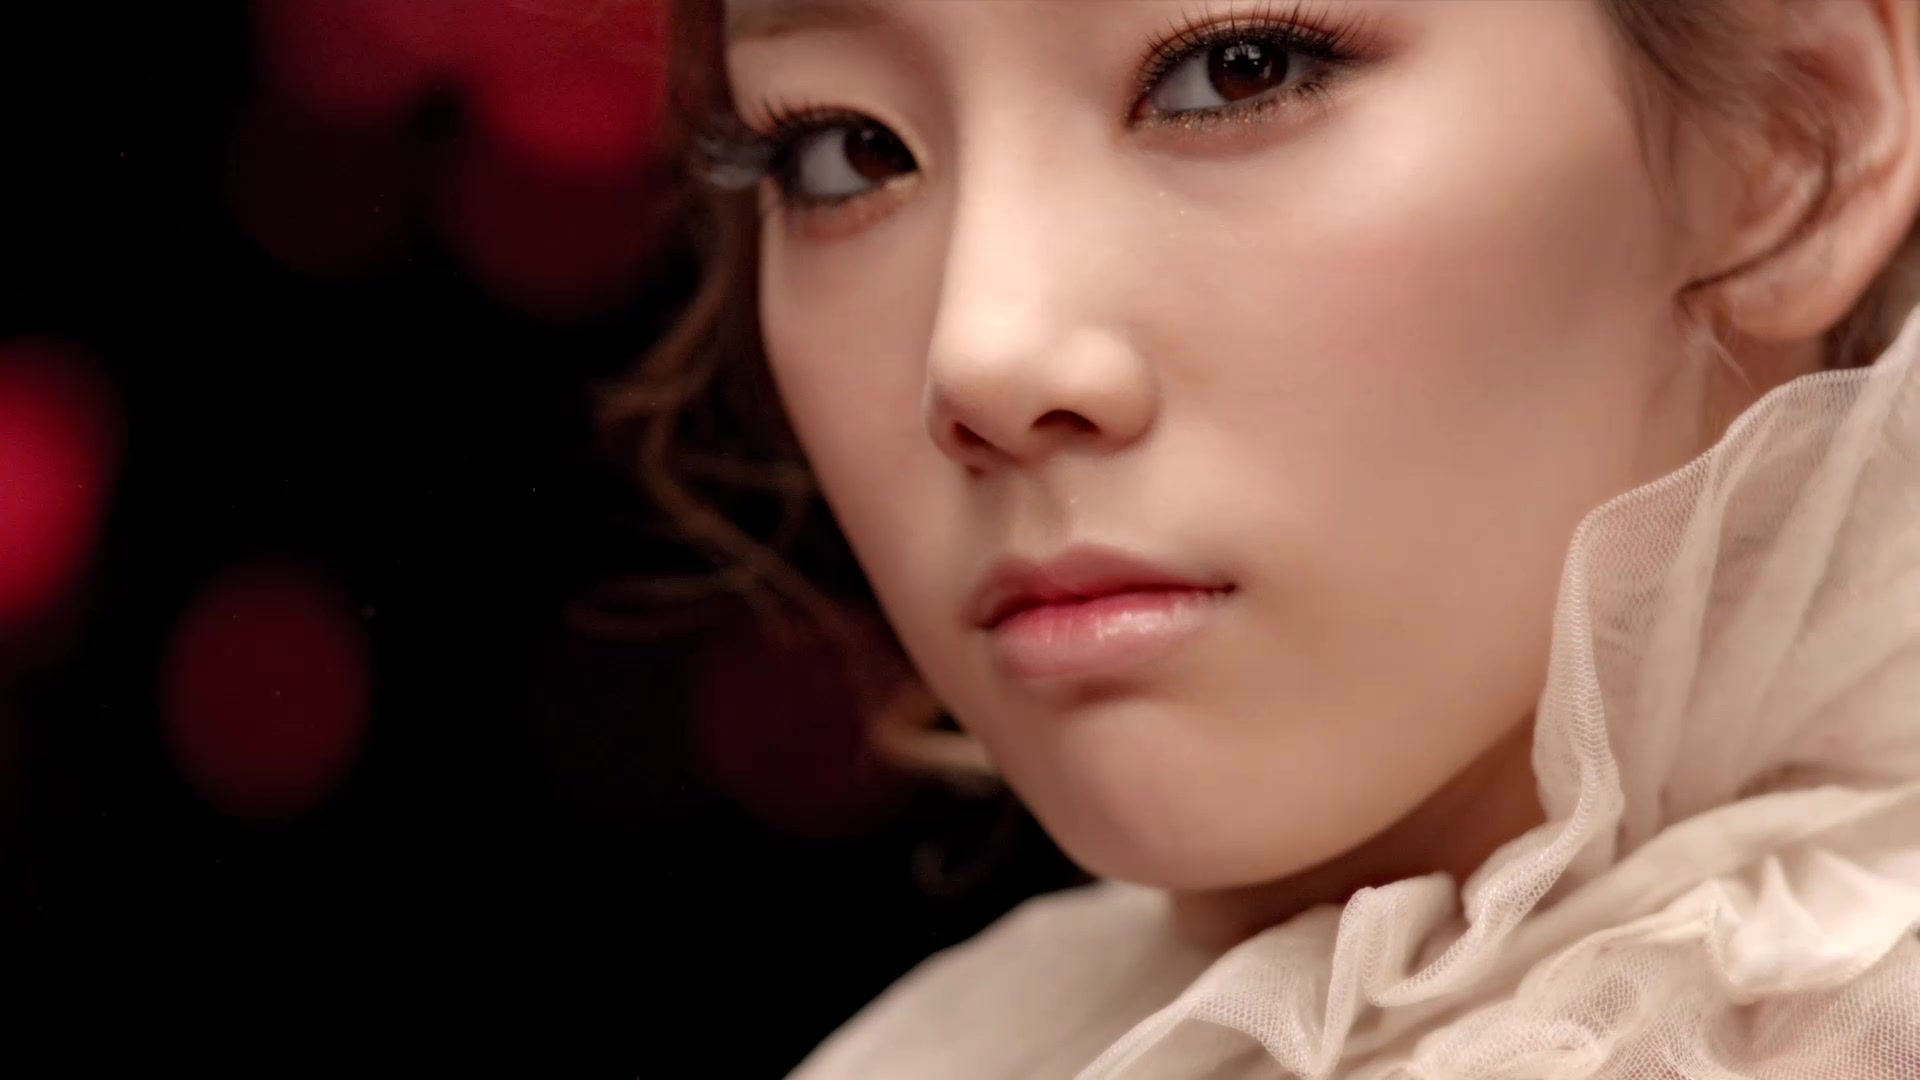 Taeyeon - The Boys mv - S♥NEISM Image (27080611) - Fanpop Taeyeon The Boys